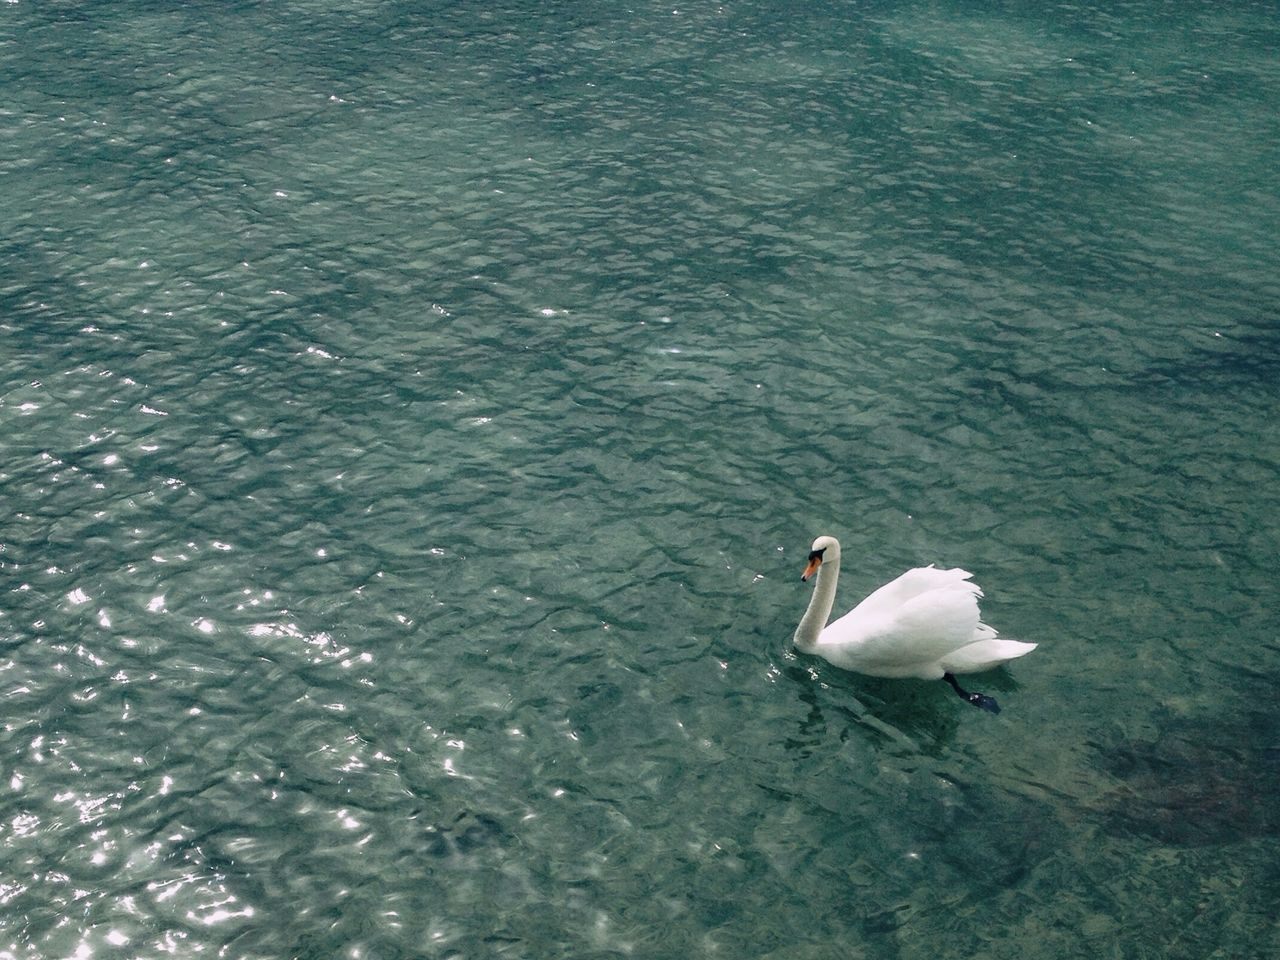 Animals Water VSCO No People Popular Photos Nature The Week On Eyem Popular No Blue Vscocam Simplicity Outdoors Pets Animal Swans Day Portrait Check This Out Hanging Out Love Sweet Tranquility Blue Water Showcase April